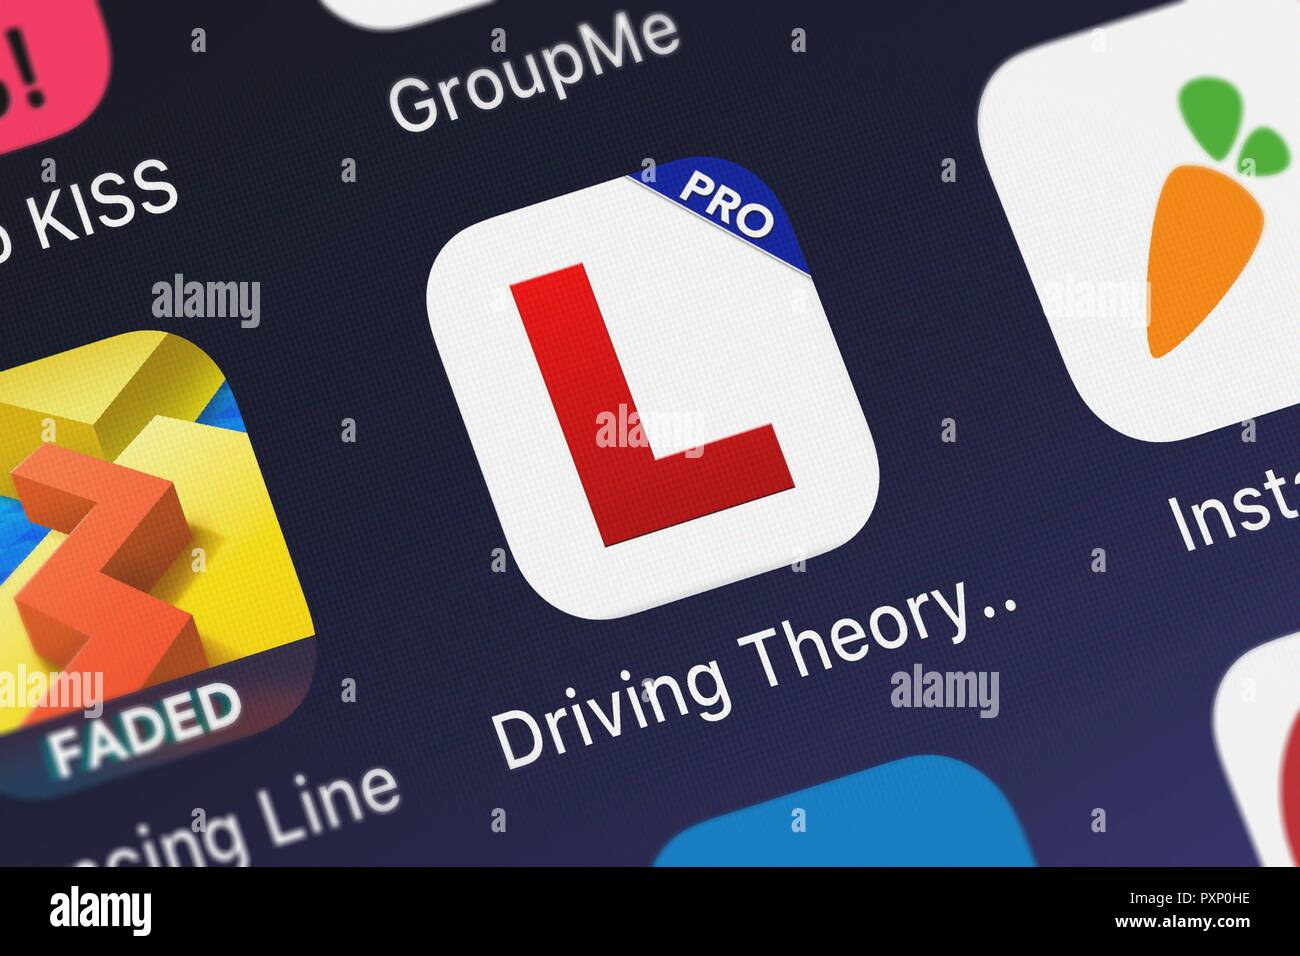 Driving Theory Test For Car Drivers Pro 2016 Uk Stock Photos